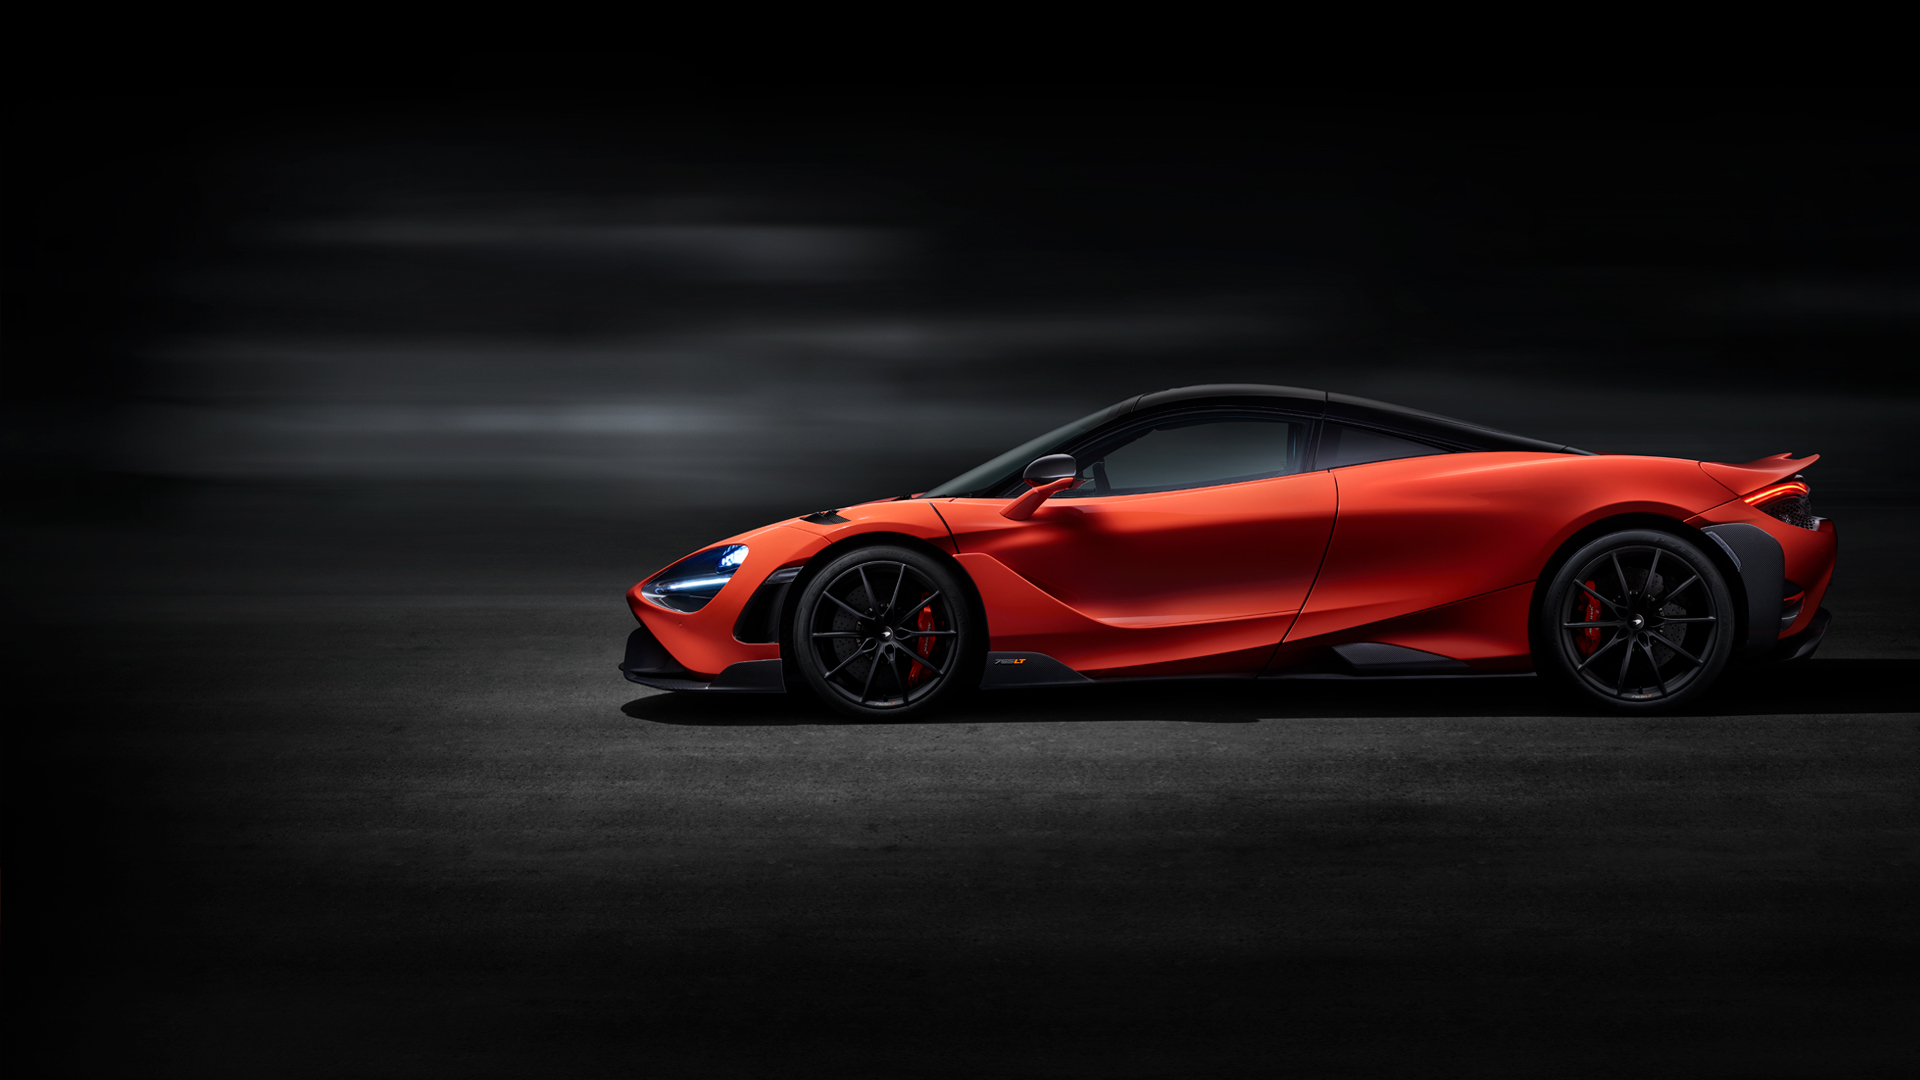 765LT Specification